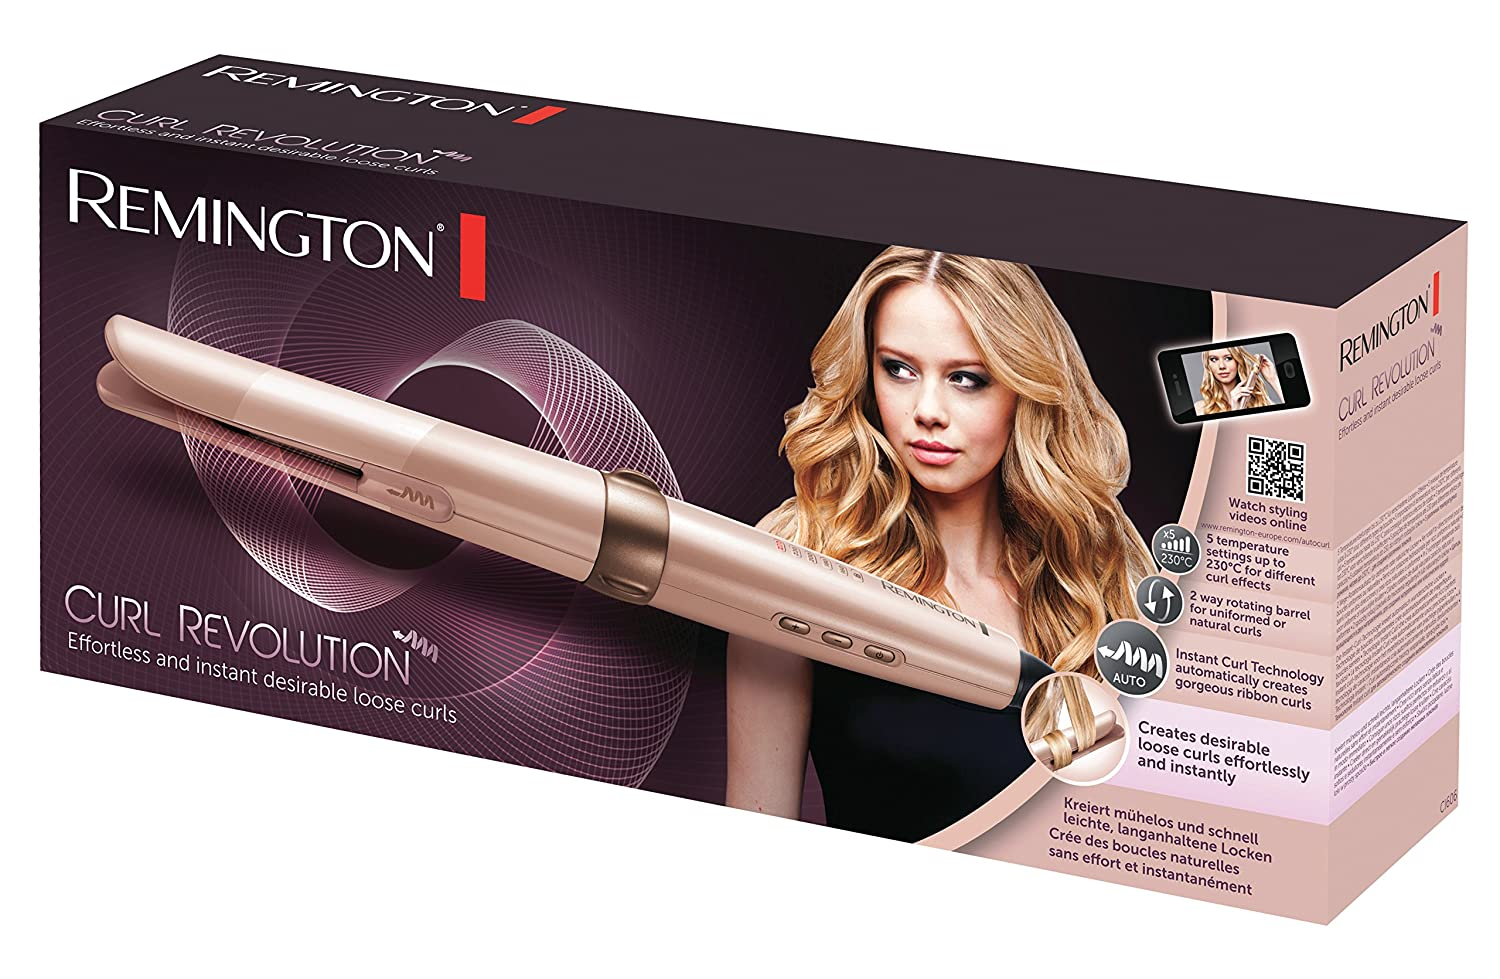 Amazon.com: Remington Hair Curler CI606 Curl Revolution Protect, Style & Shine by Remington: Health & Personal Care